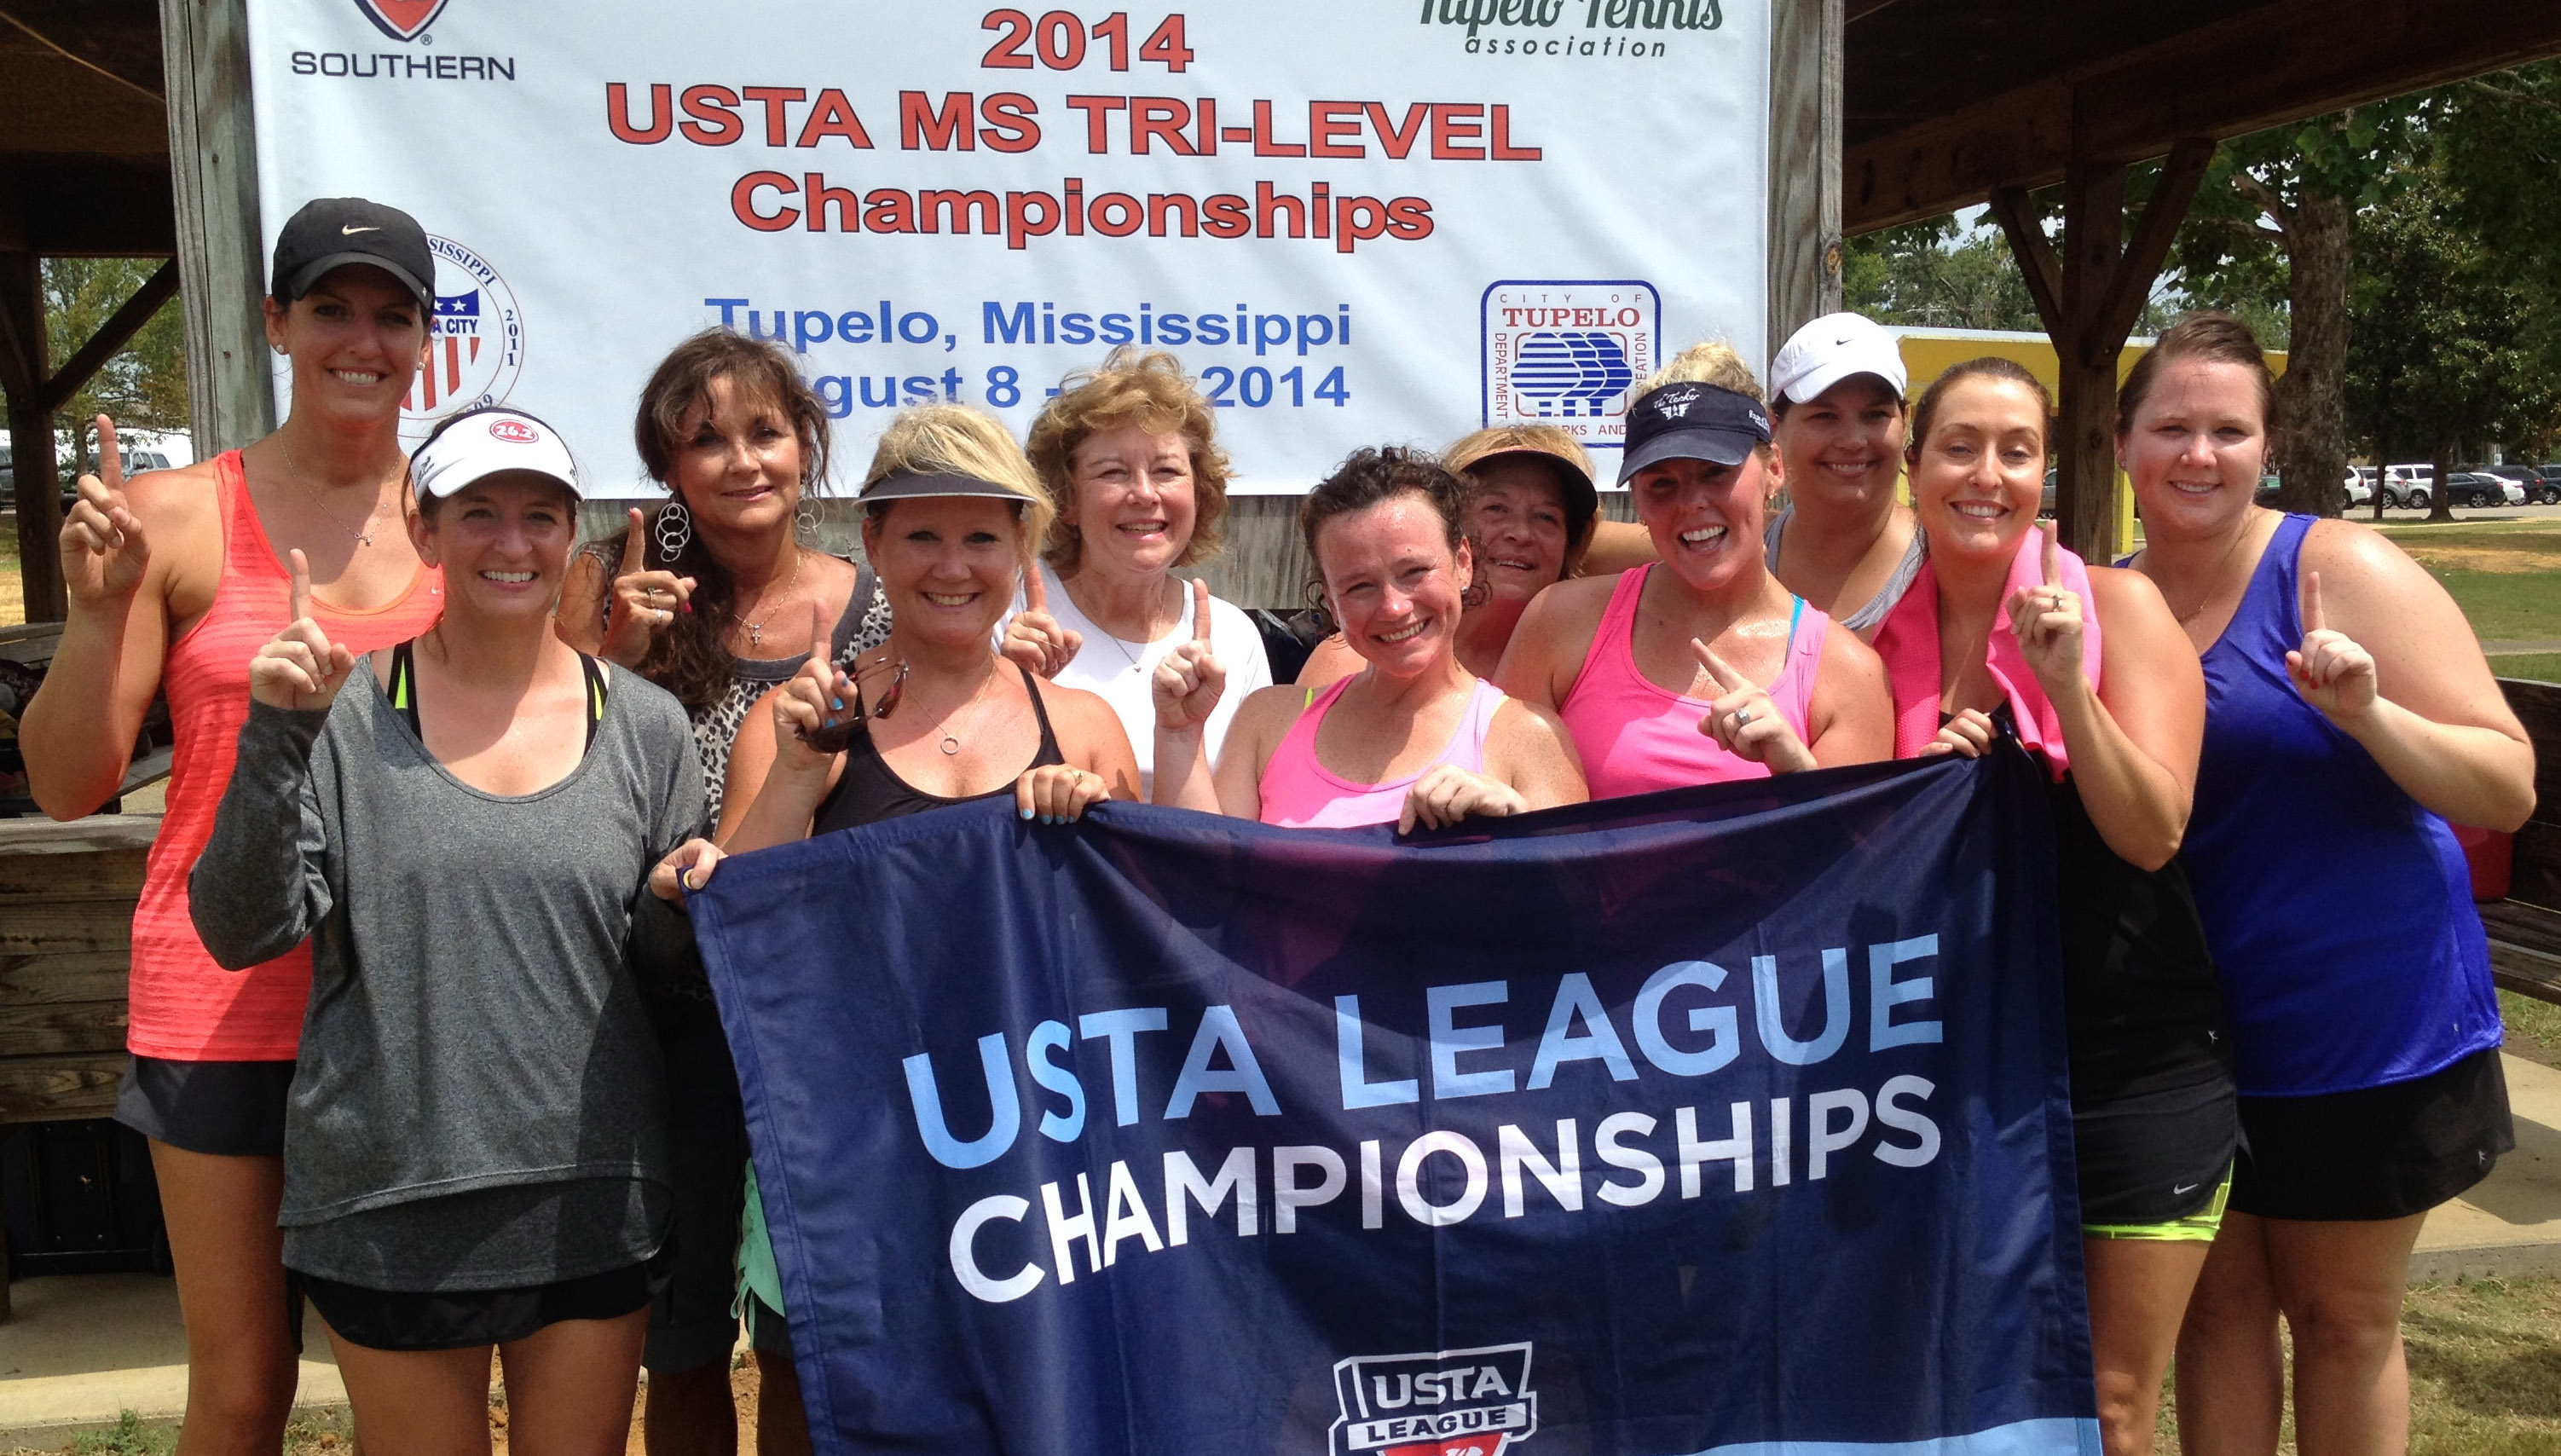 The Brookhill Tennis Club consists of (from left):Heather Watts, Mary Helen Miller, Angela Taylor, Beth Evans, Celeste Carty, Kasey Hutson, Poozie Swink, Lindsey Robinson, Kelly Calcote, Deanna Howington, Anna Johnson.  Team members not pictured are Carolyn Stephens, Courtney Watts, and Katie Hall.